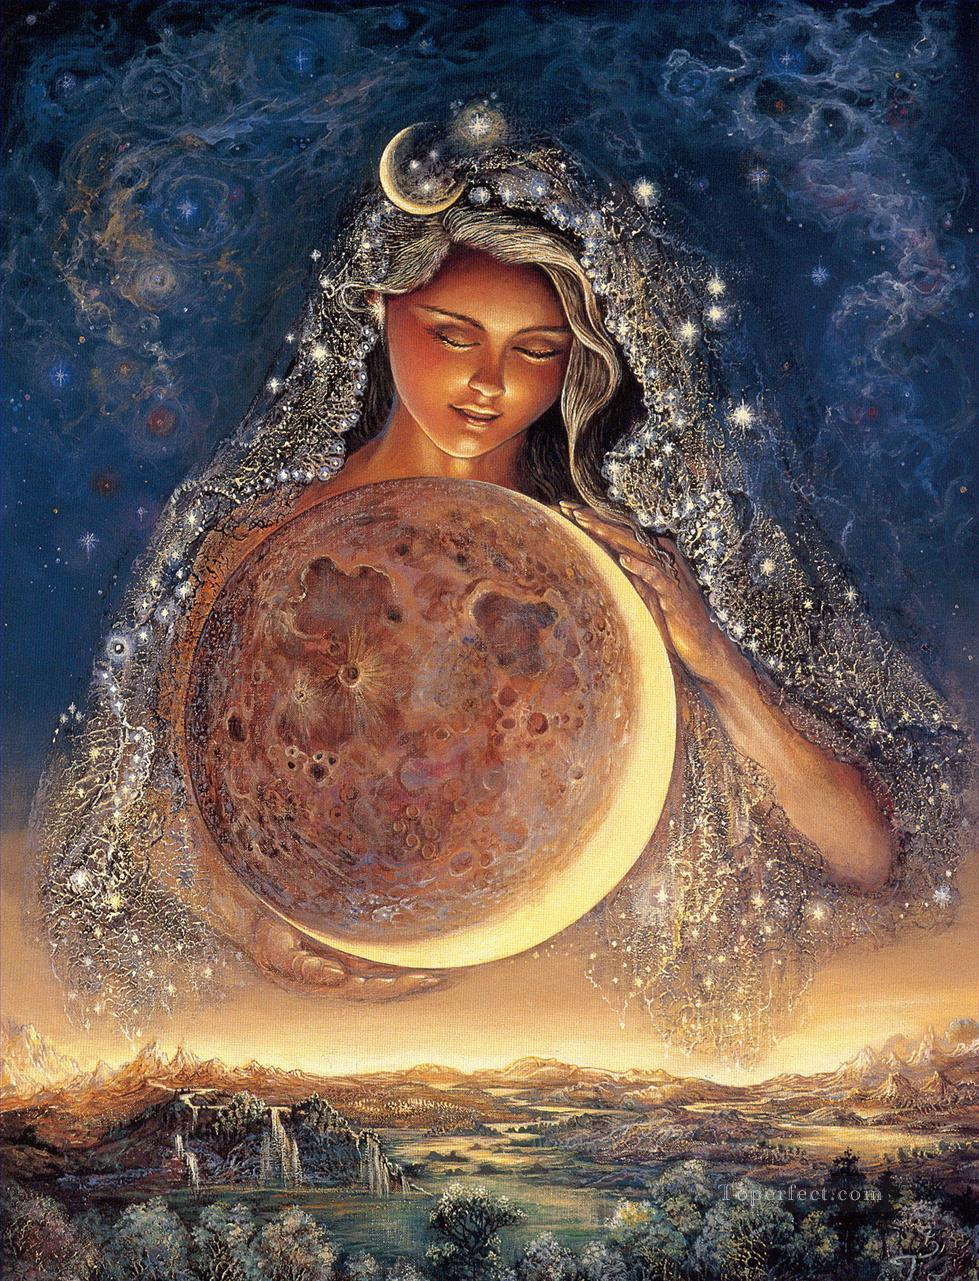 5 JW goddesses moon goddess Fantasy